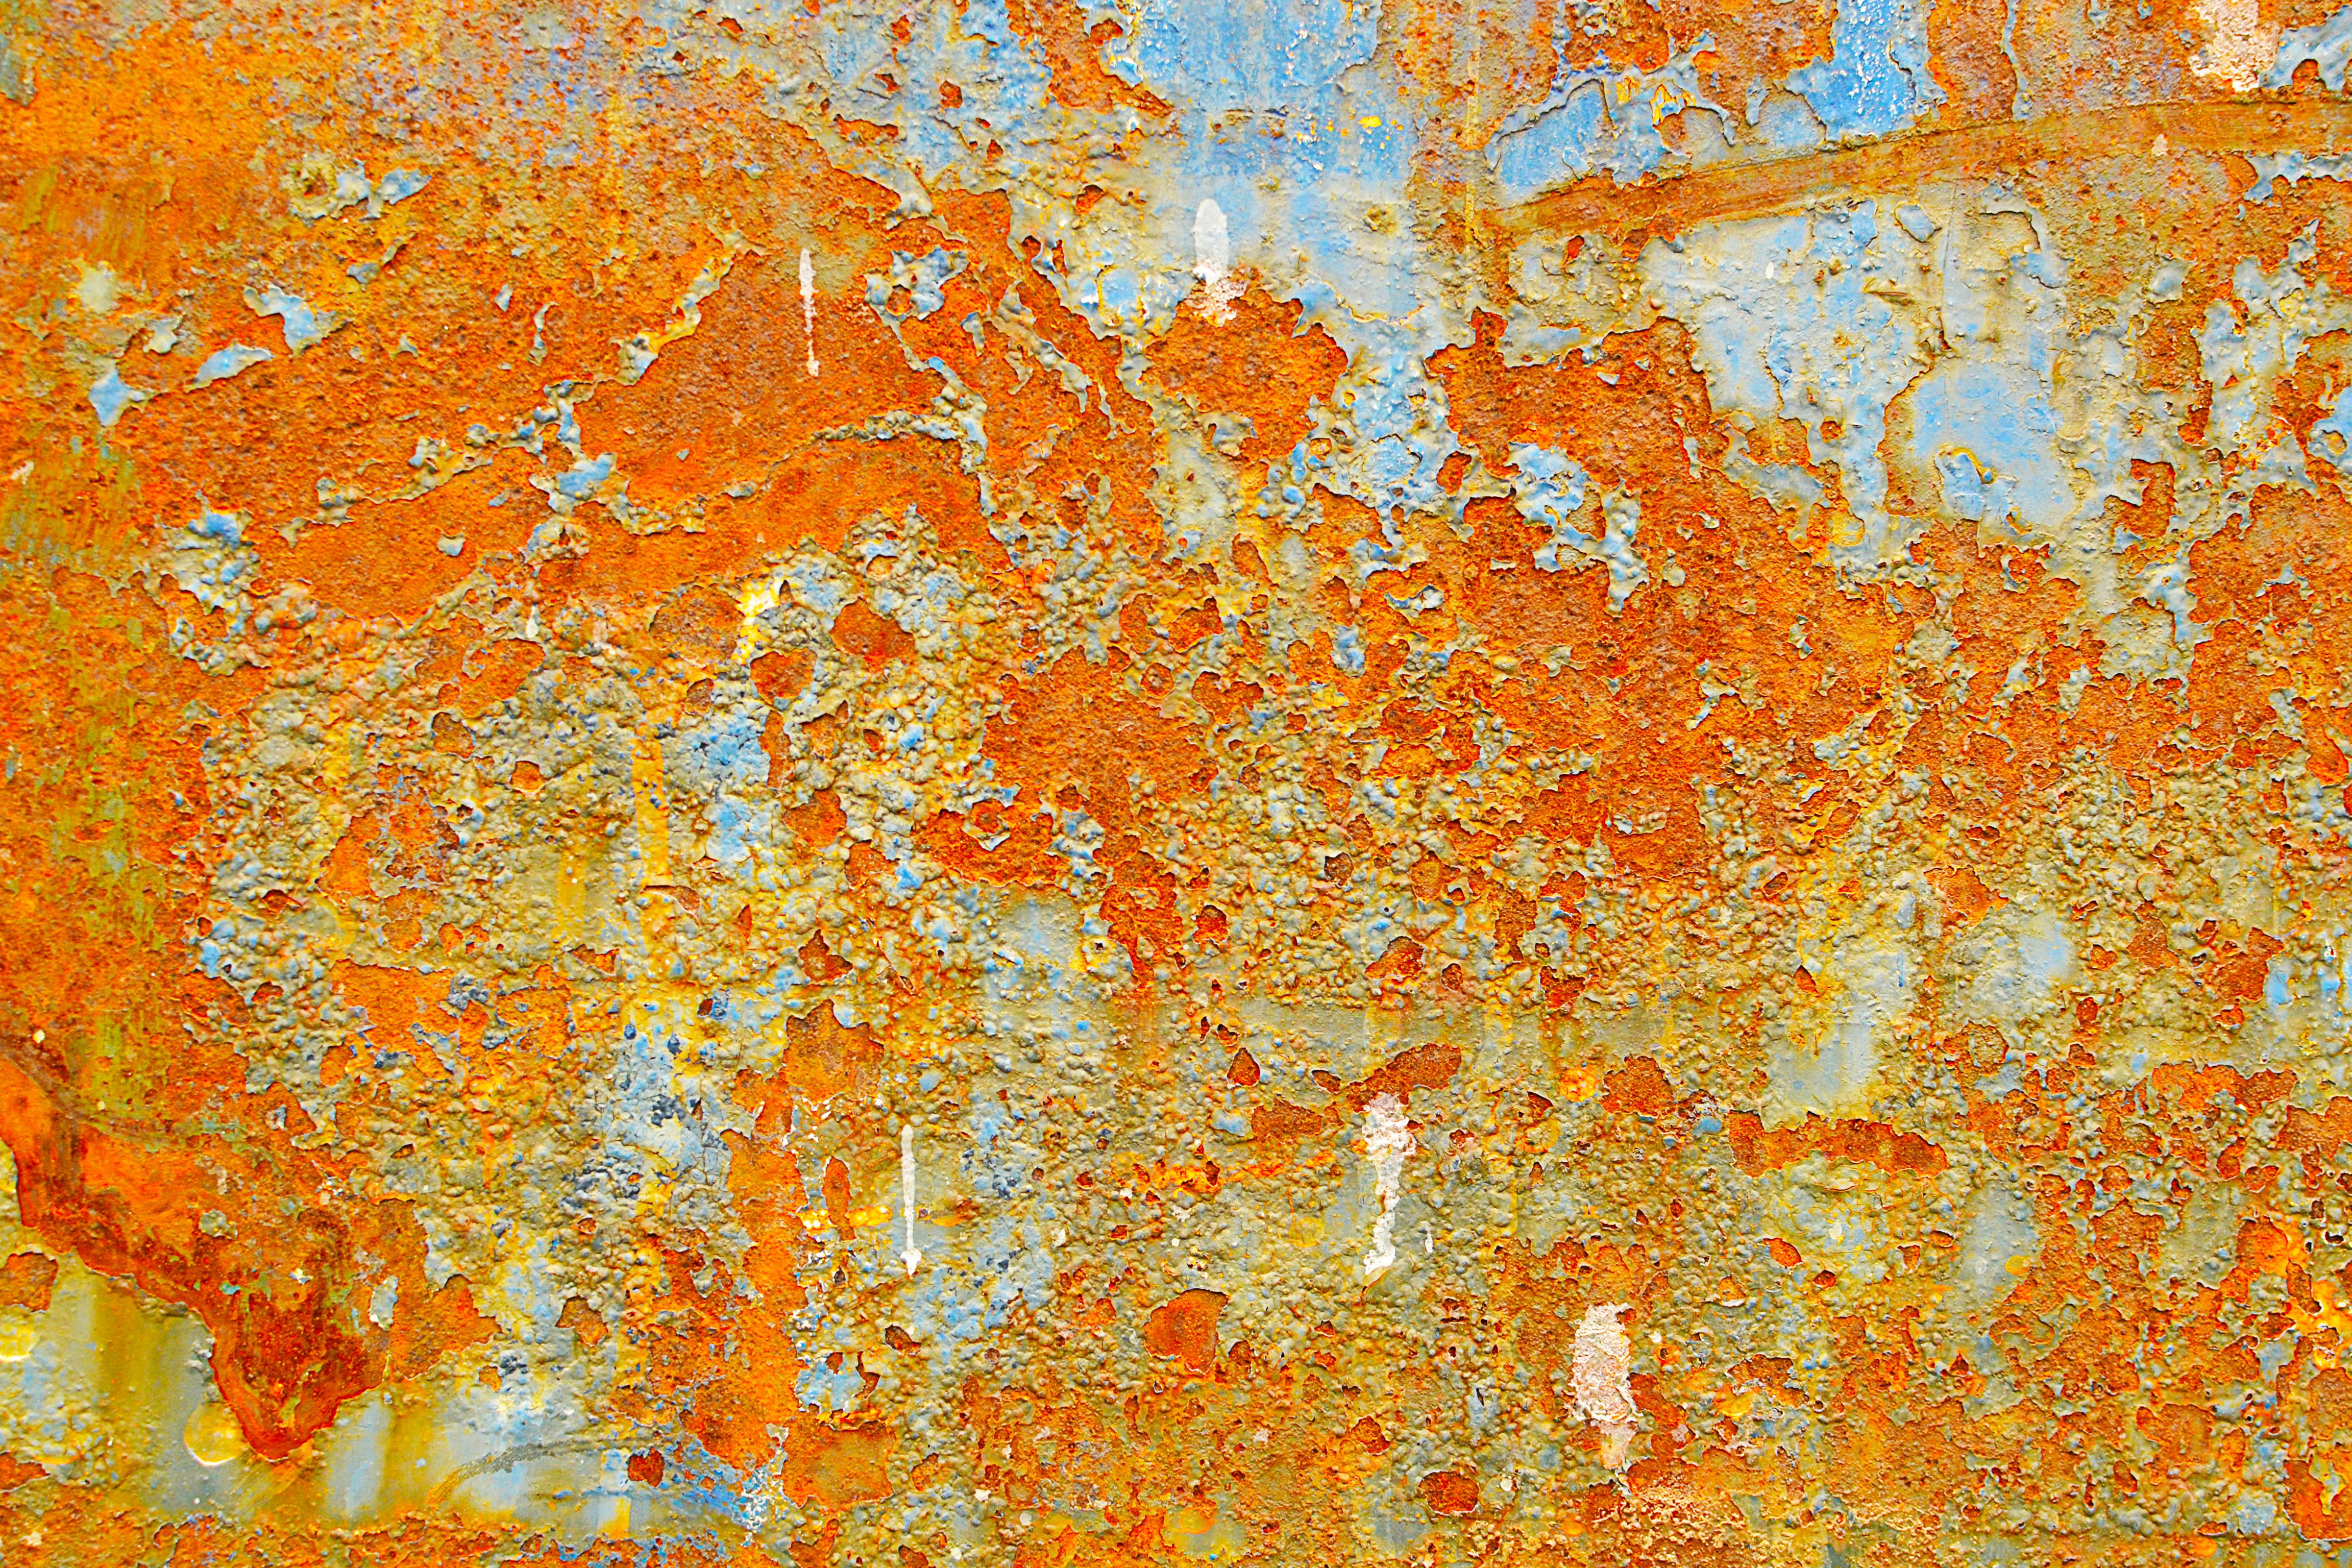 rust metals and texture - photo #35